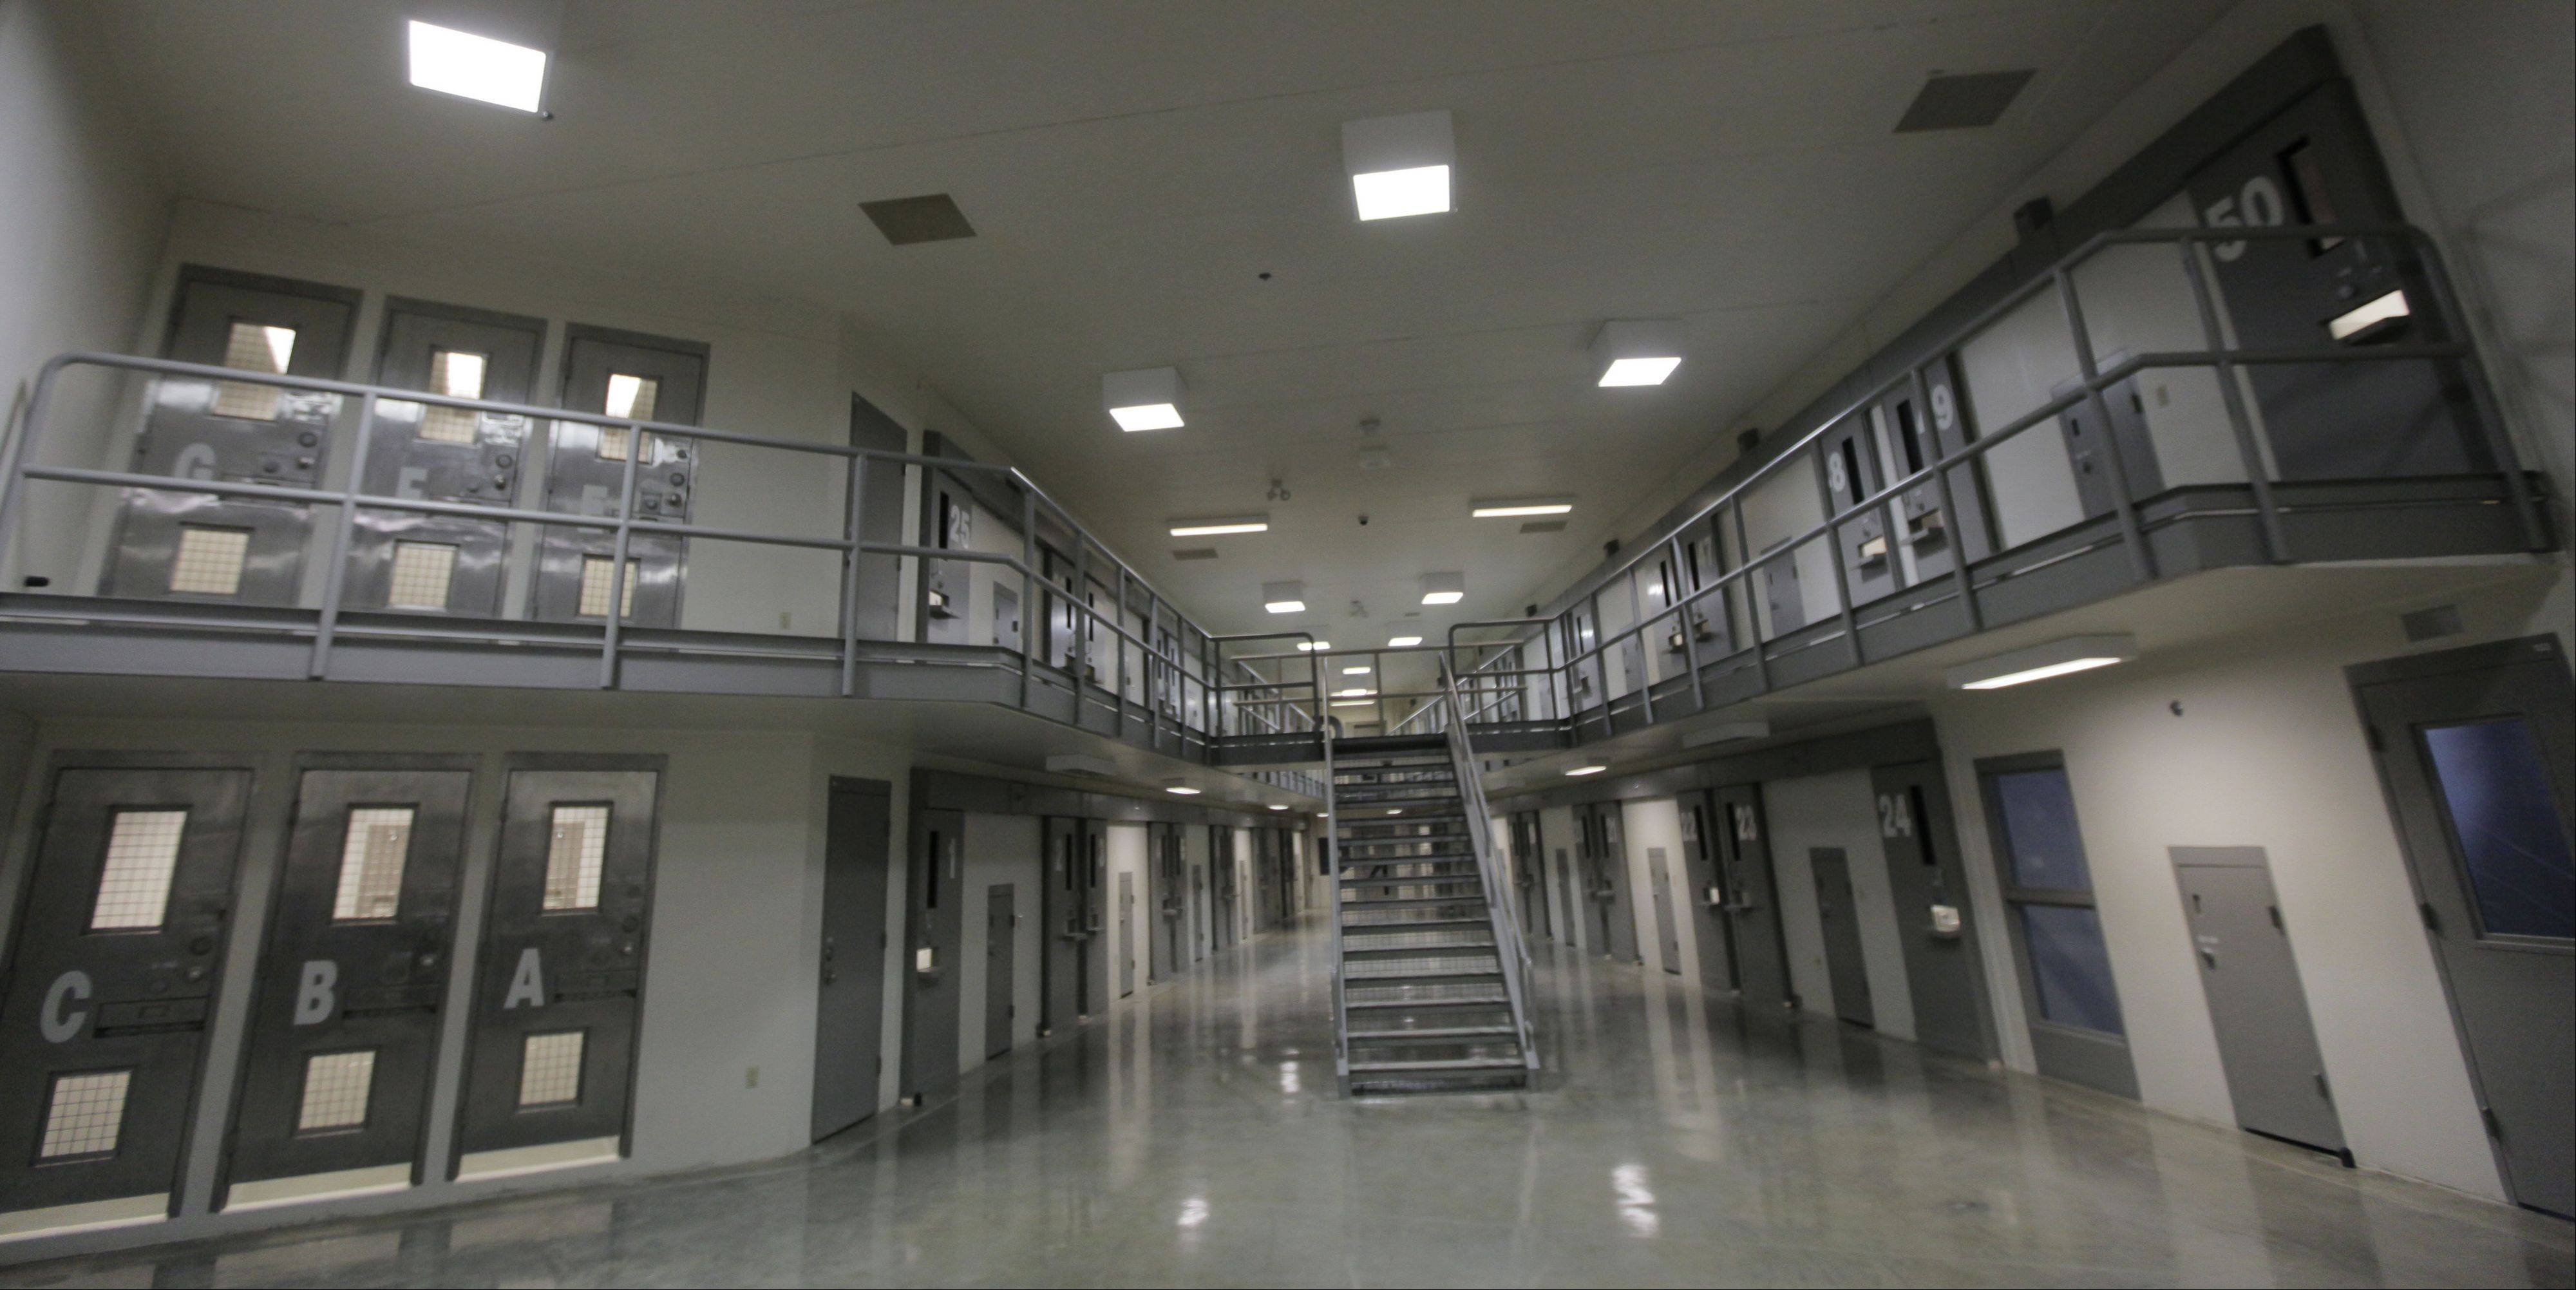 The federal Bureau of Prisons has been trying to arrange the purchase of Illinois' Thomson Correctional Center for years.